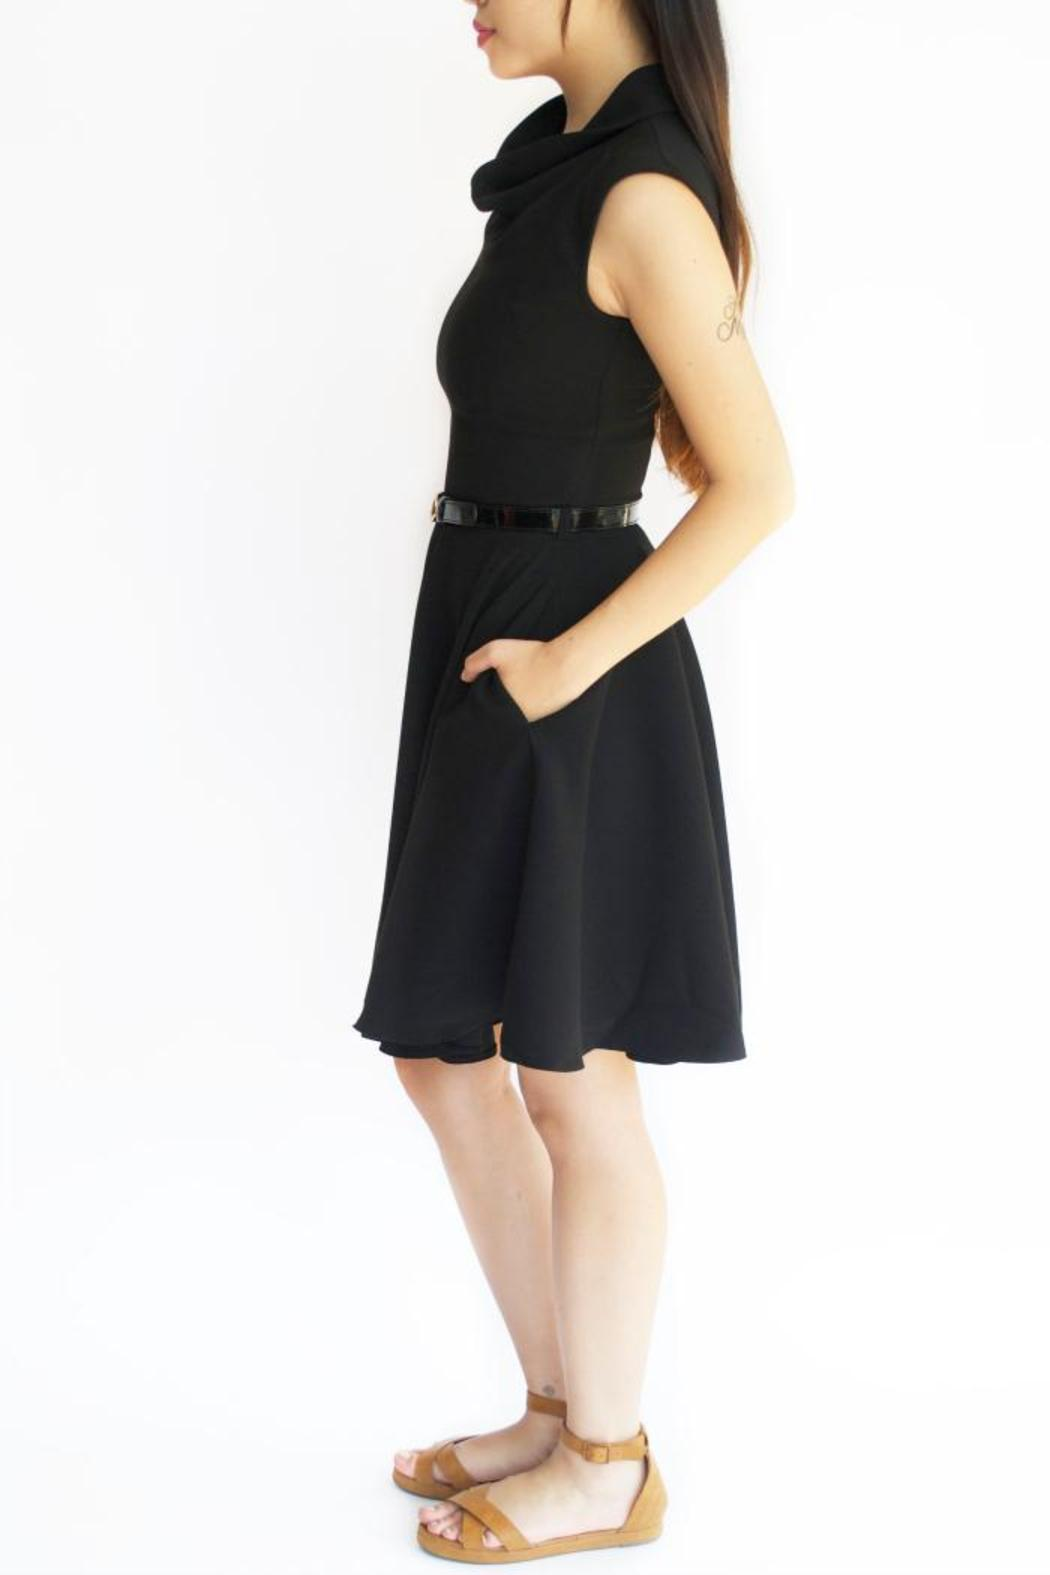 closet belted black dress from indiana by boutique